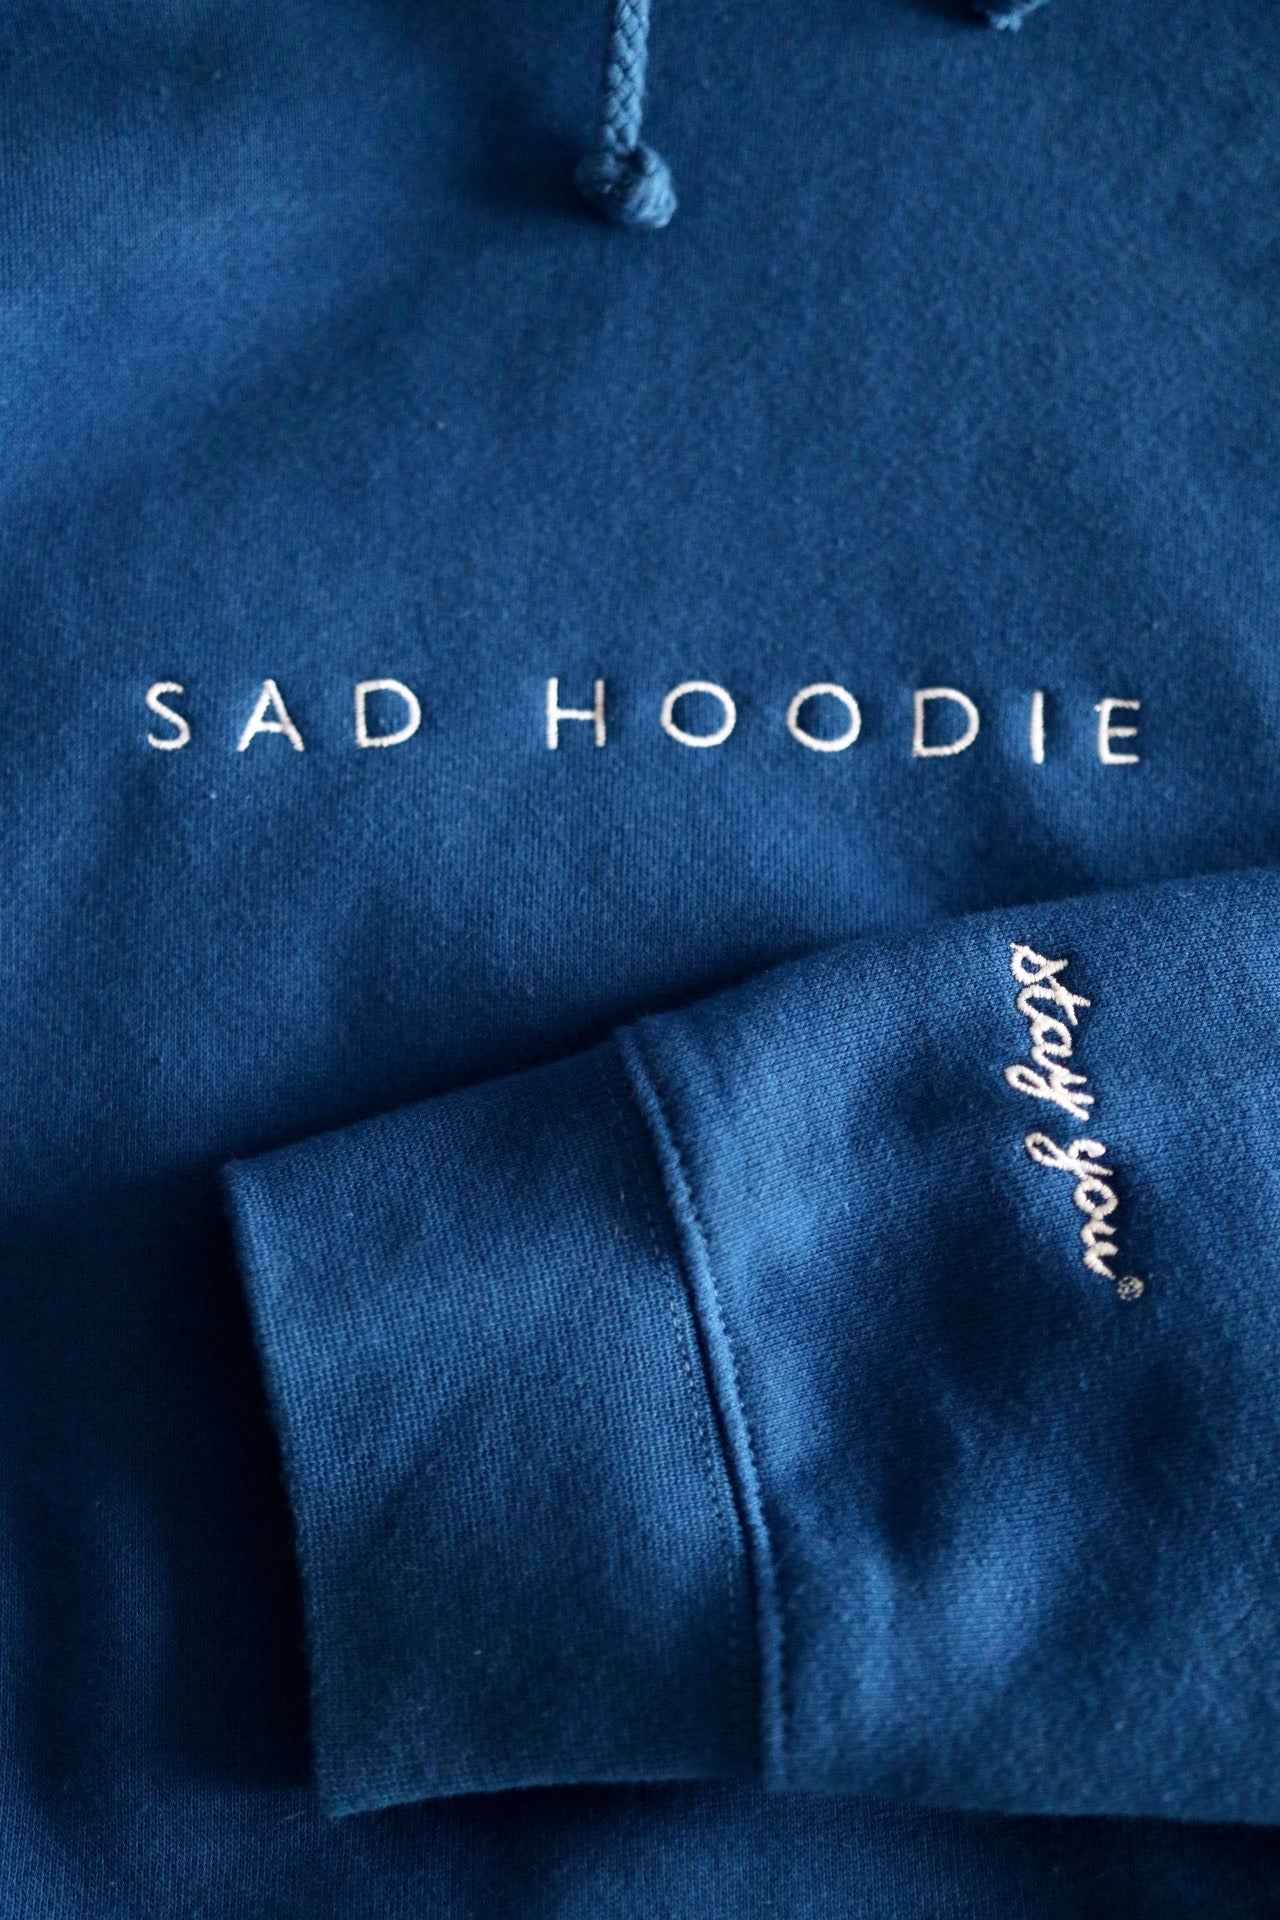 'Sad Hoodie' Embroidered in Deep Feels Blue